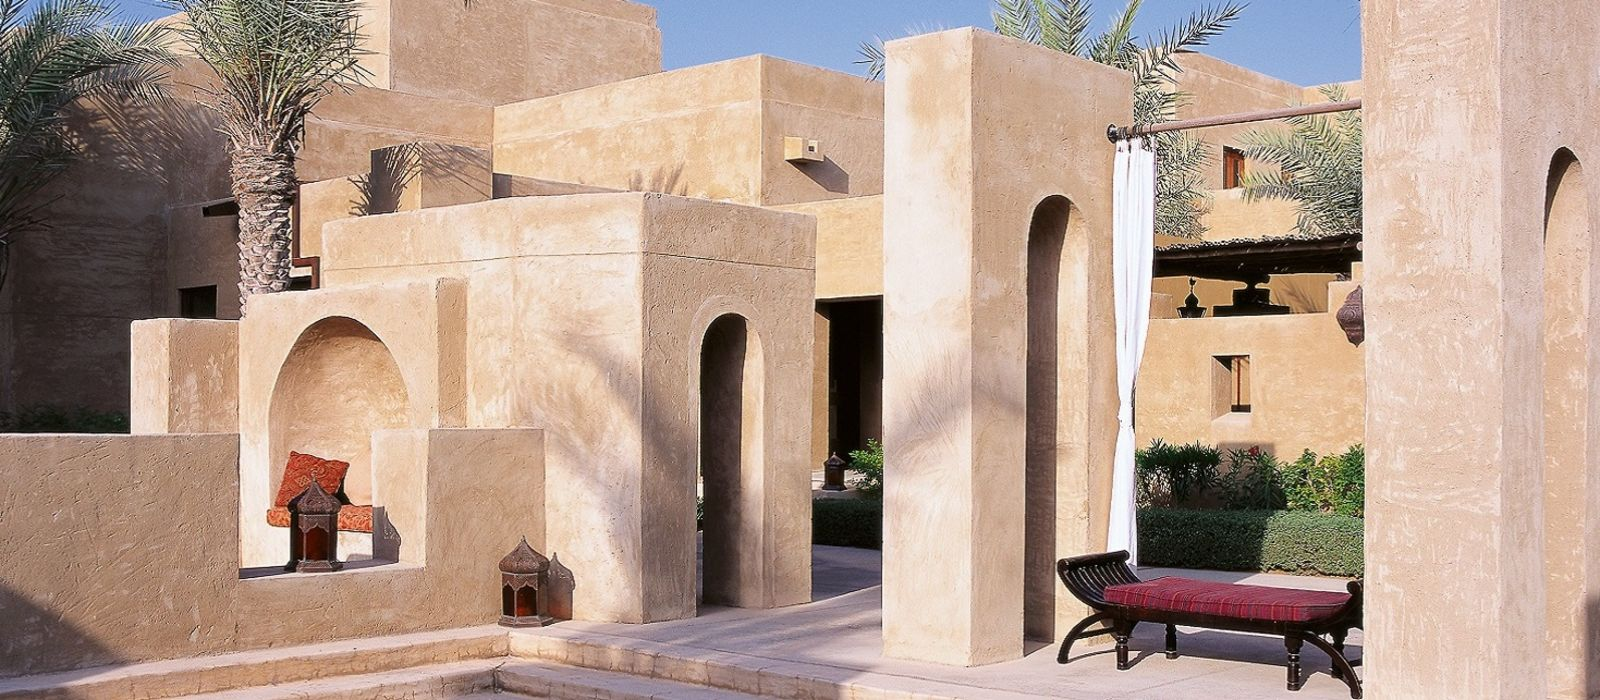 Hotel Bab Al Shams Desert Resort & Spa United Arab Emirates